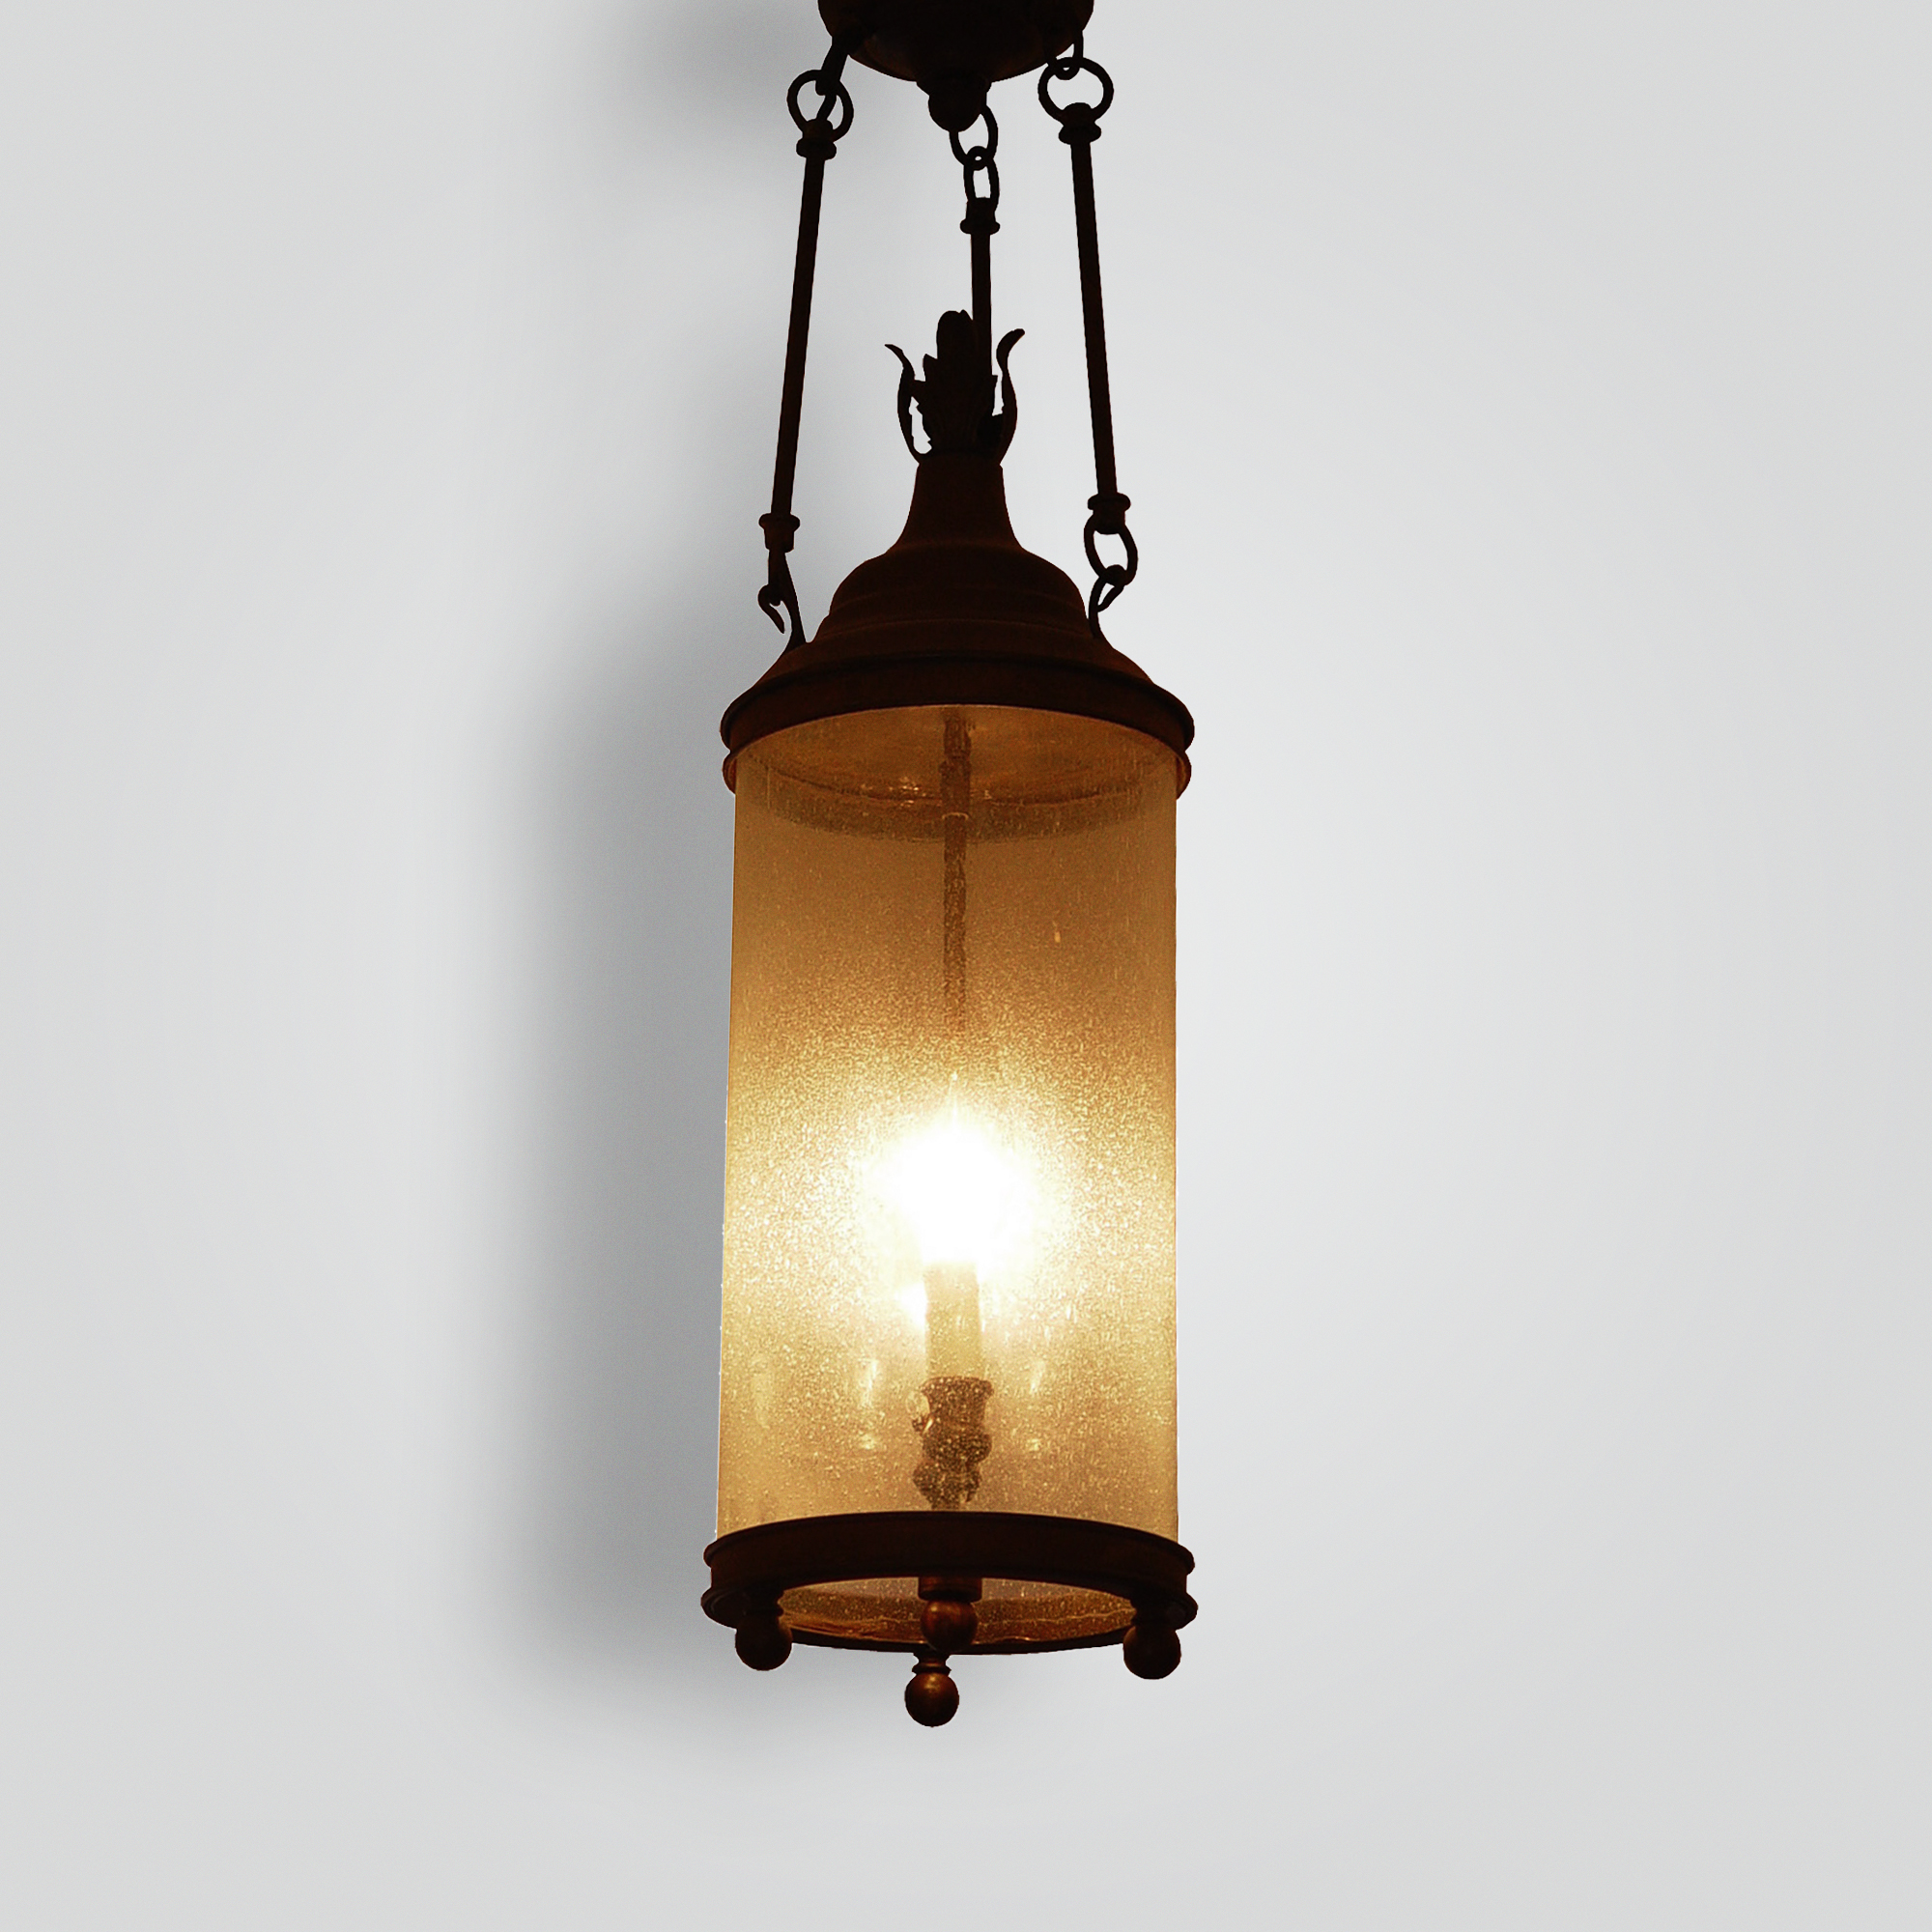 1071 Cylinder Pendant – ADG Lighting Collection